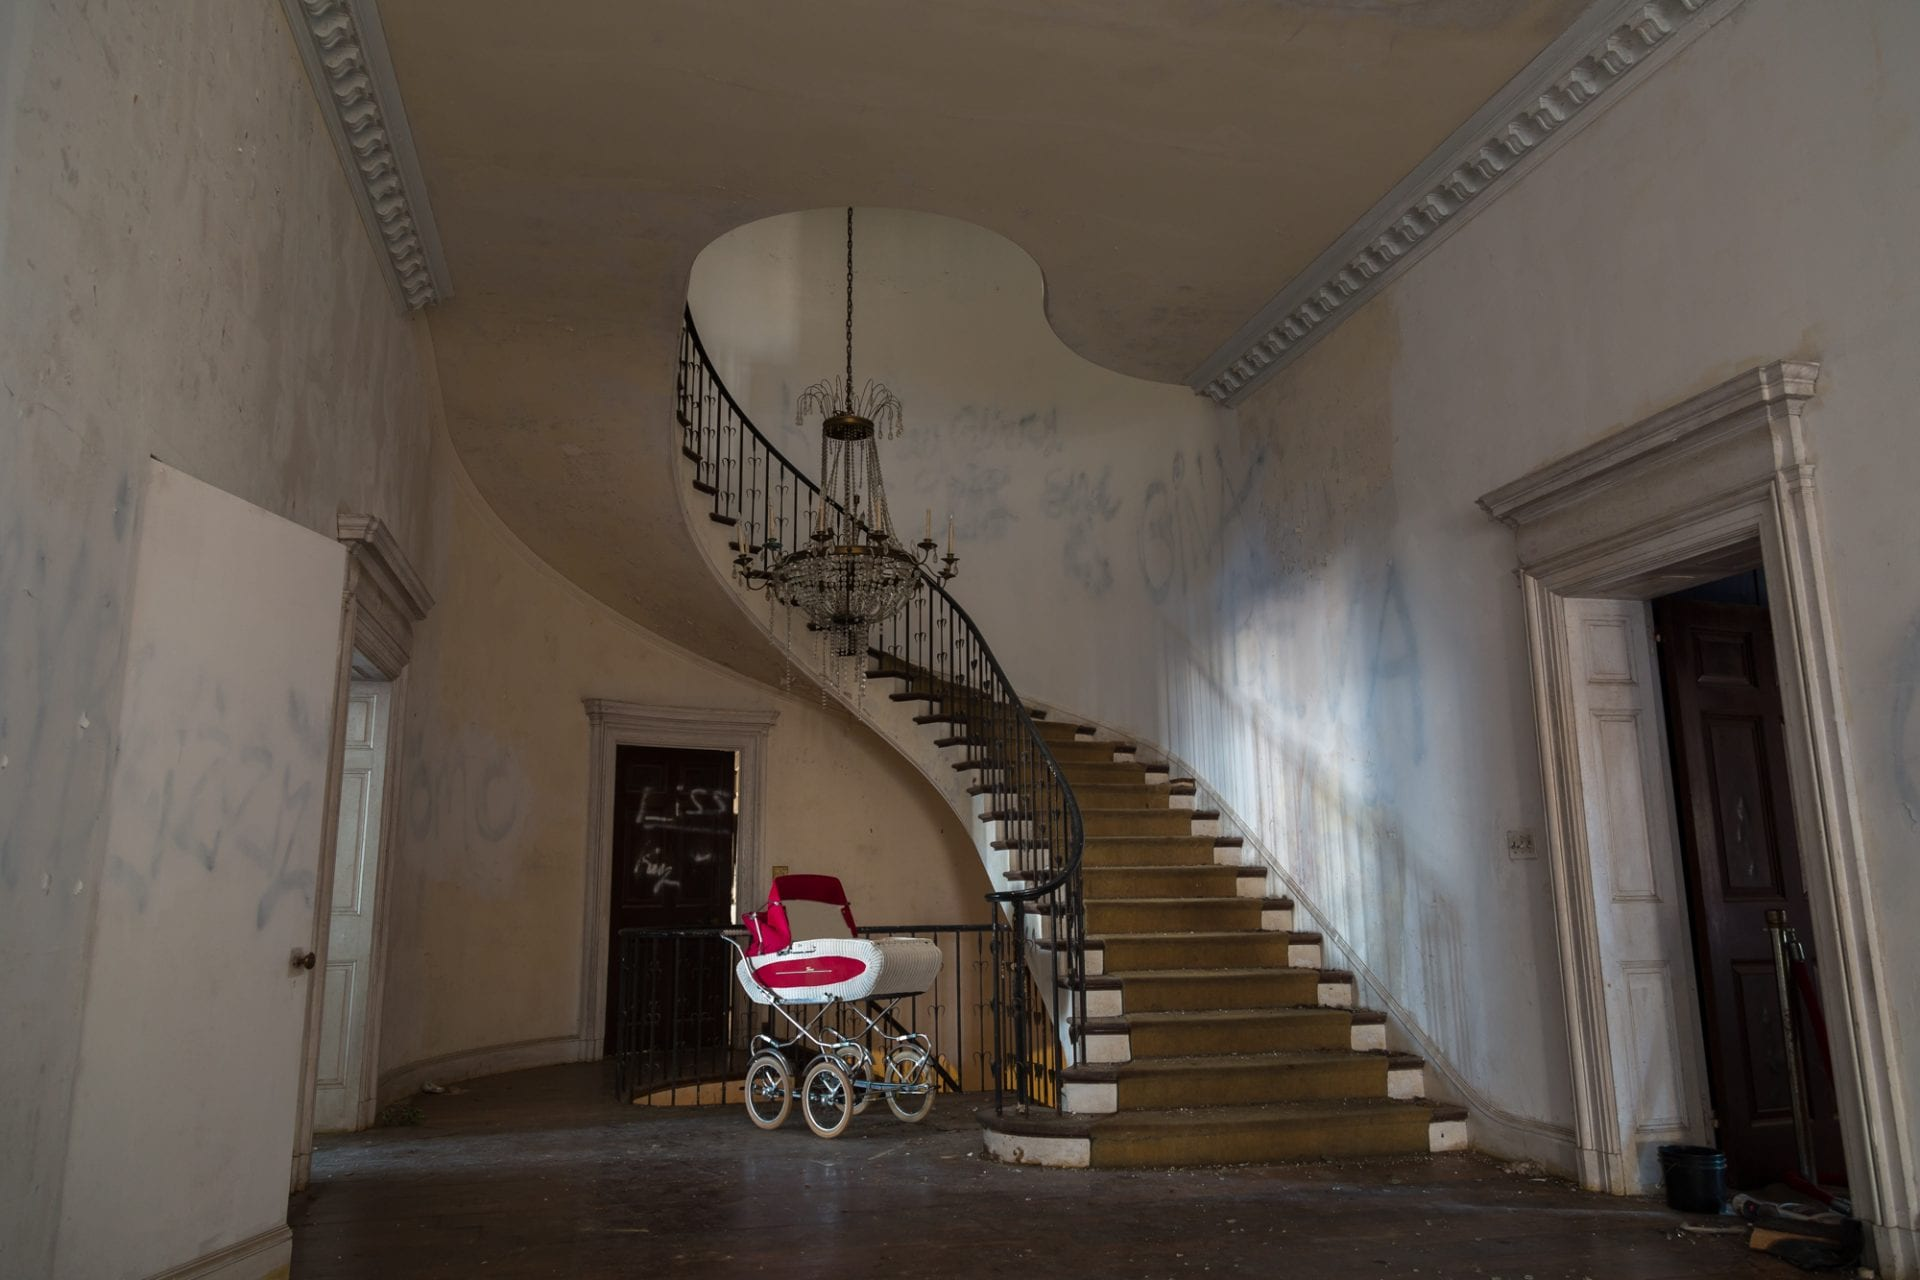 57-room-mansion-New-York-City-spiral-staircase-baby-carriage